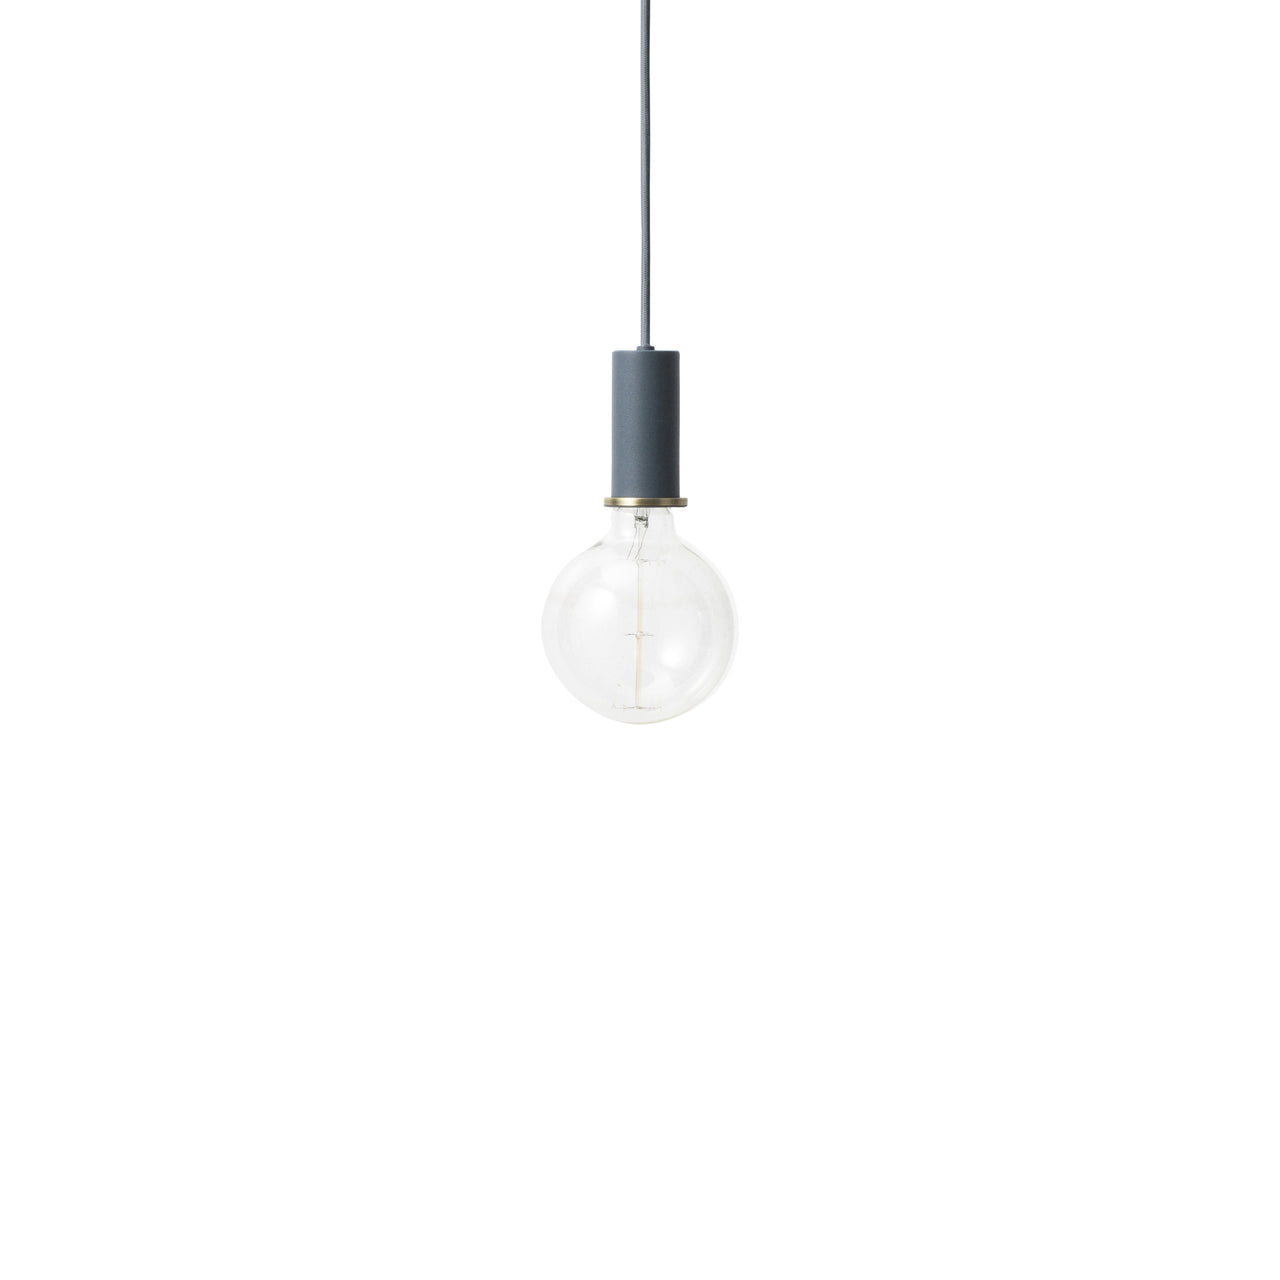 Collect Lighting: Pendant + Low + Dark Blue